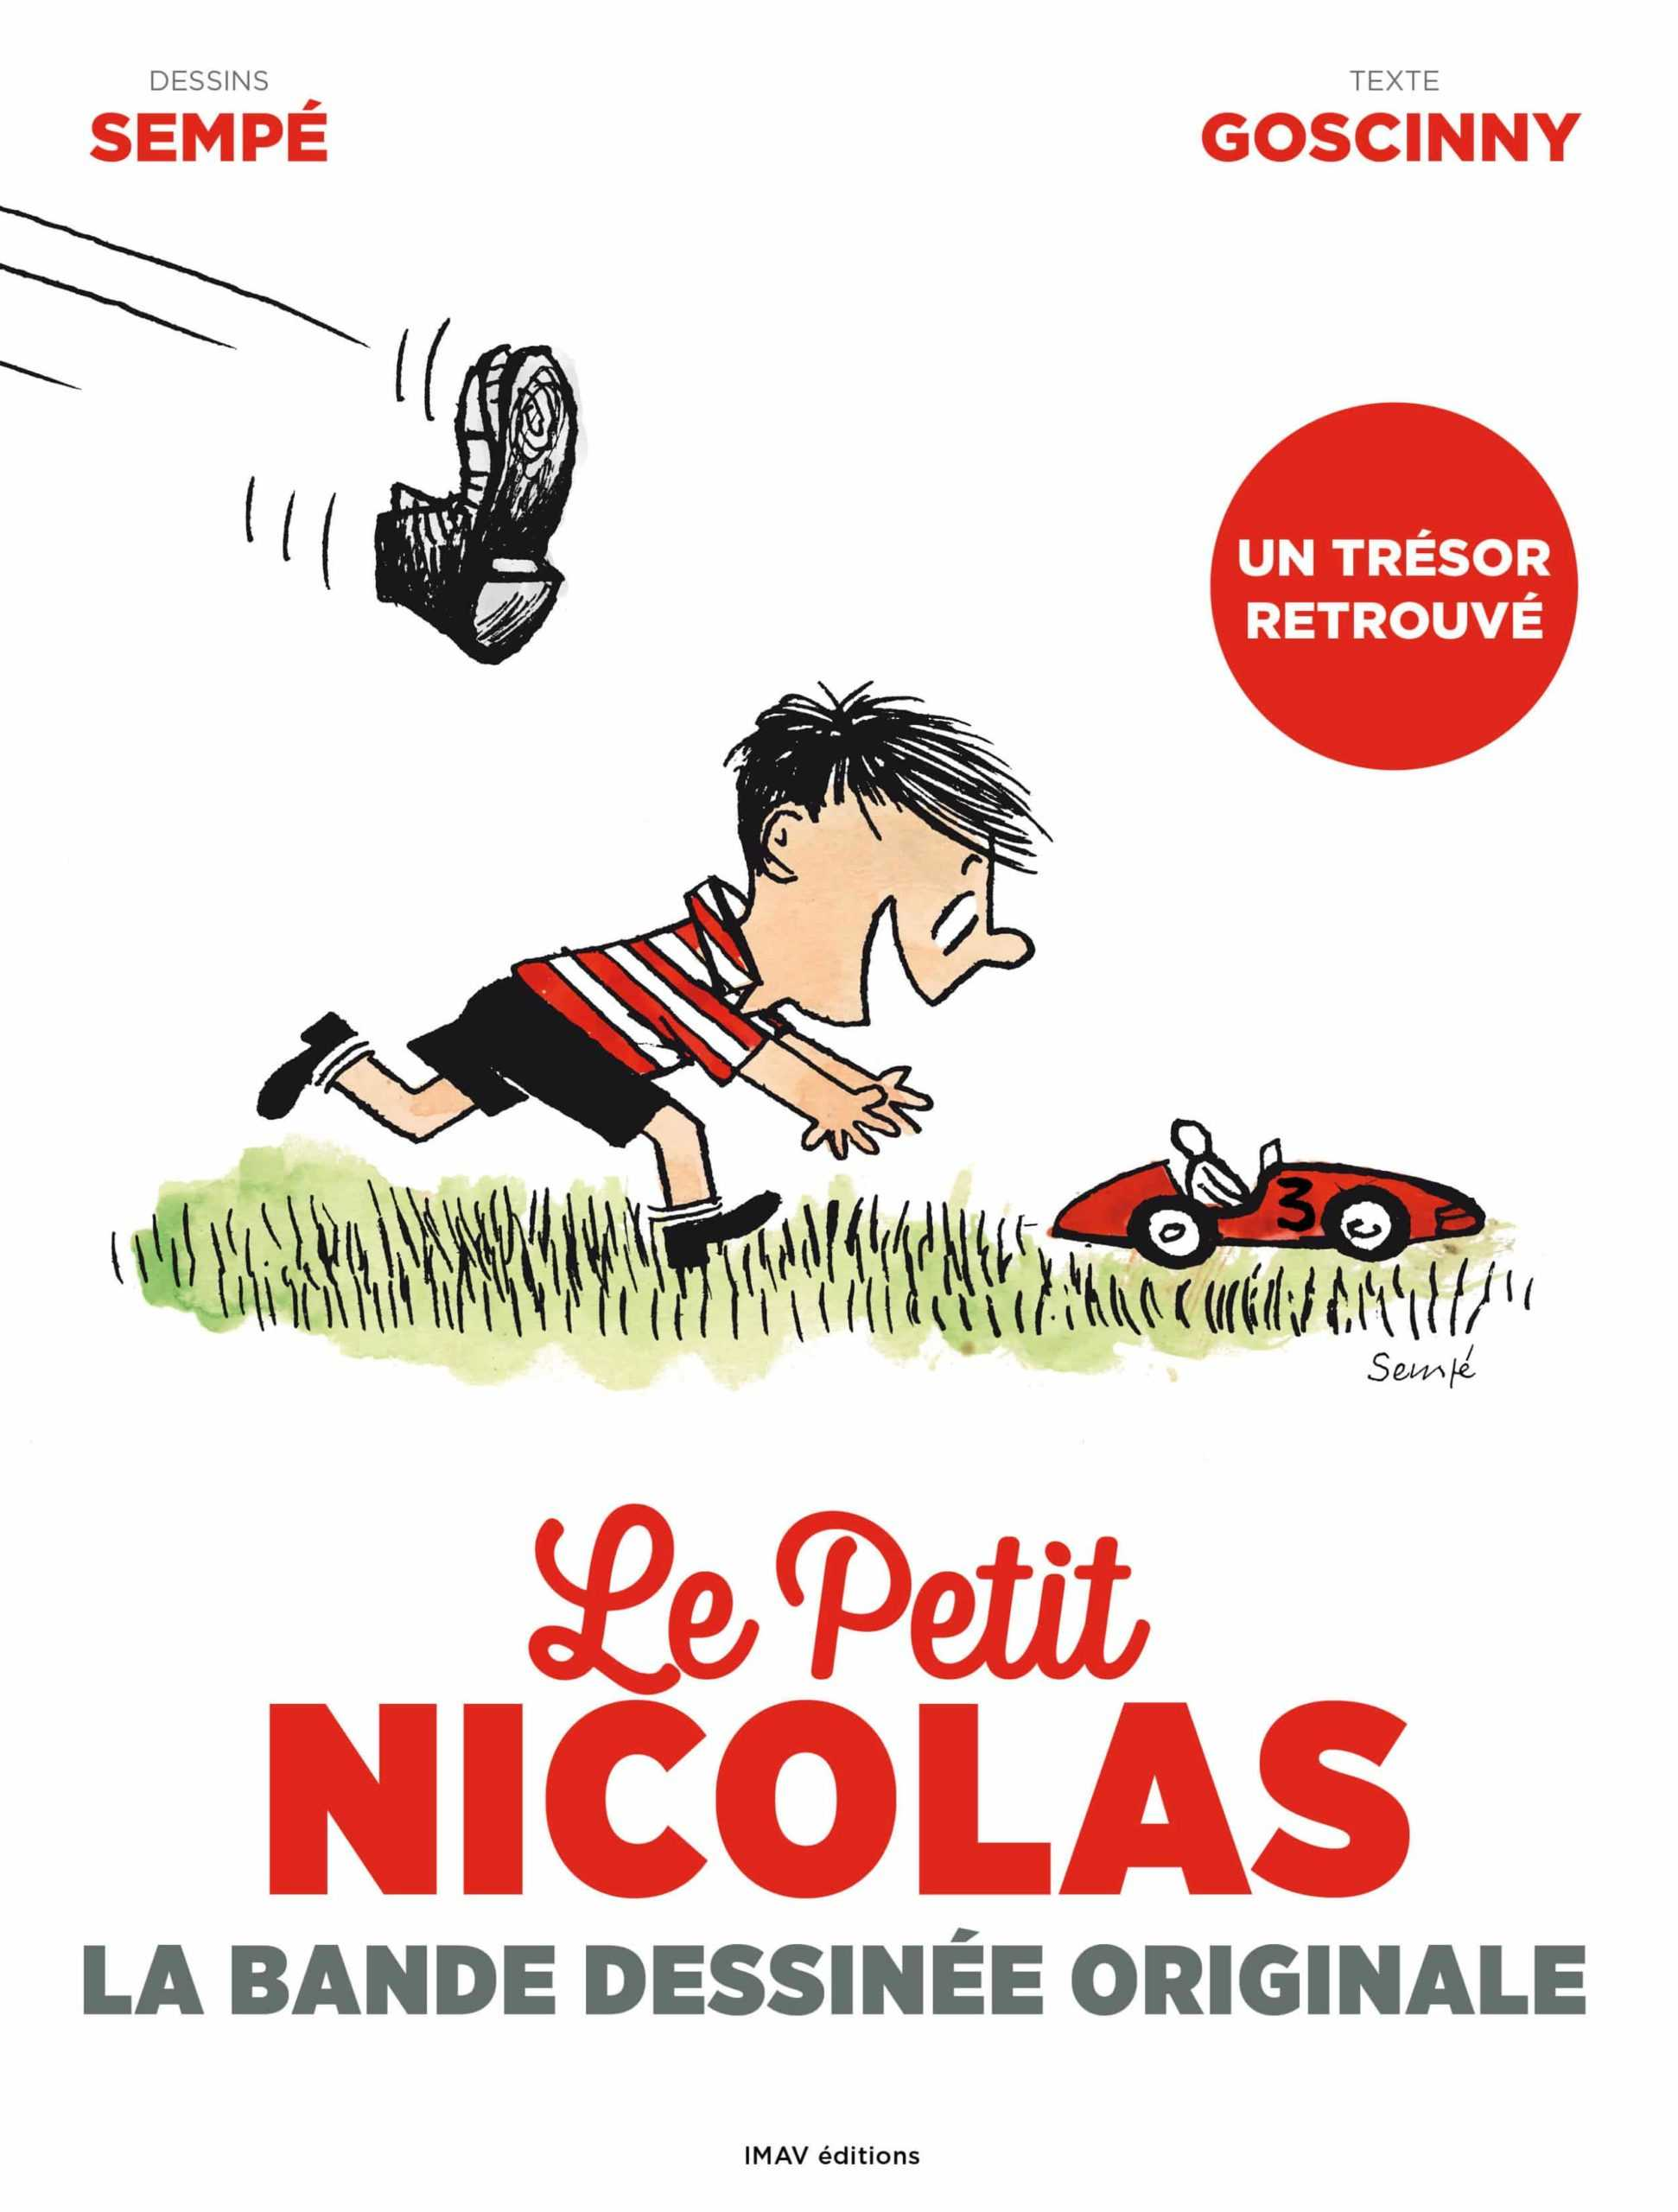 Le Petit Nicolas, la version originale en couleur